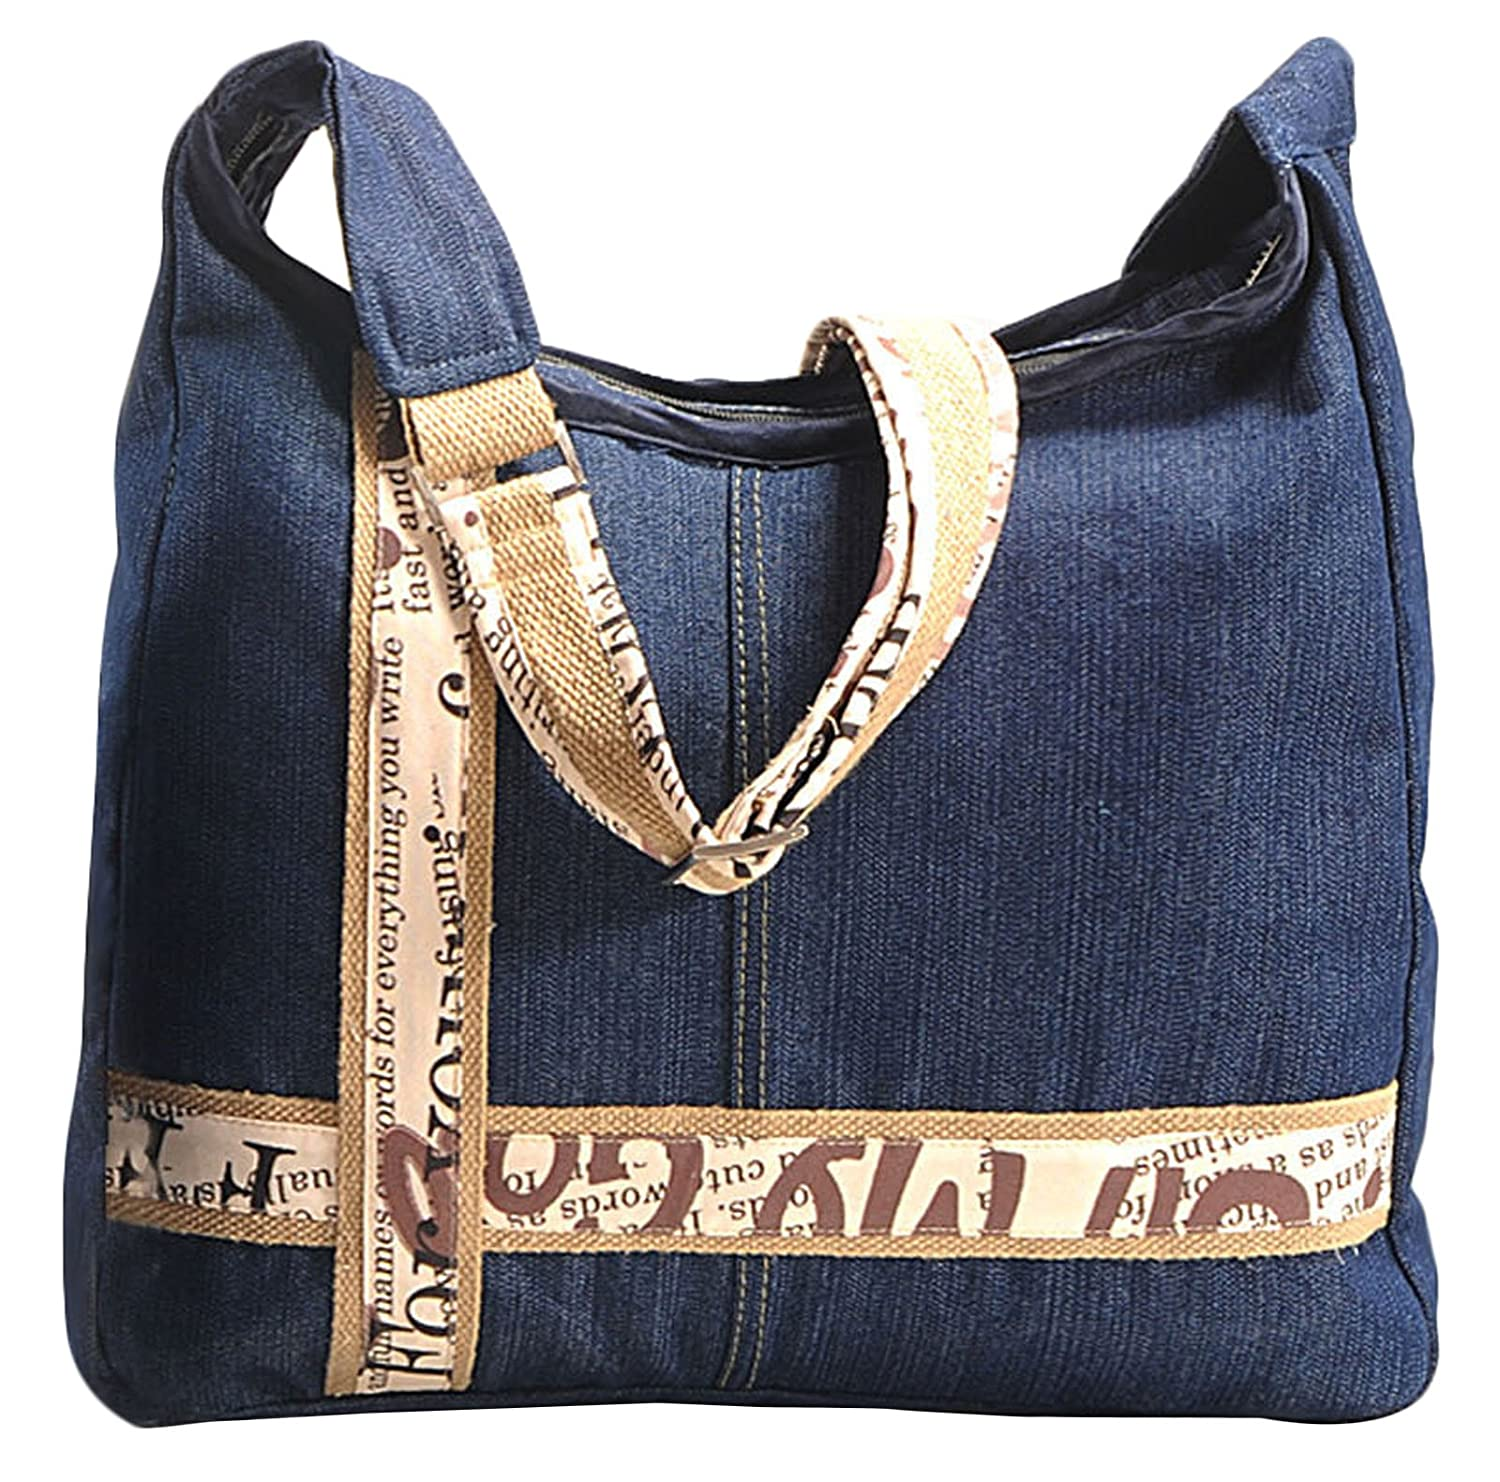 97b5770383 Yuga Women s Designer Denim Messenger Crossbody Shoulder Bag Handbag   Handbags  Amazon.com